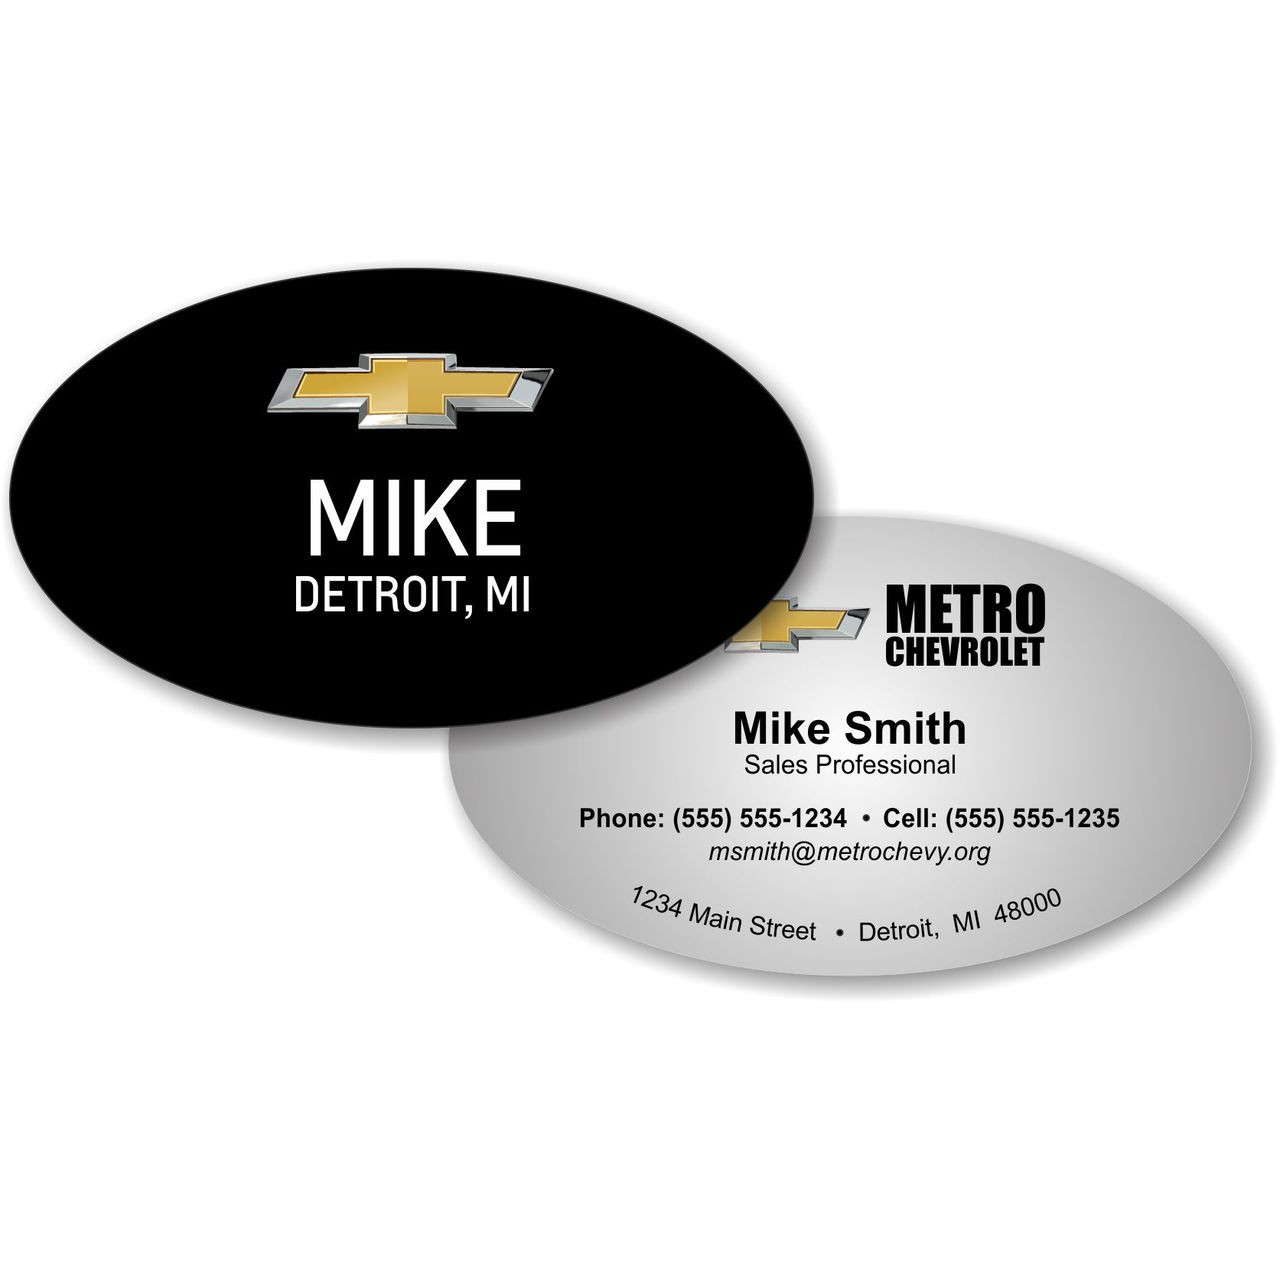 Chevrolet oval business card oval cards chevrolet oval business card colourmoves